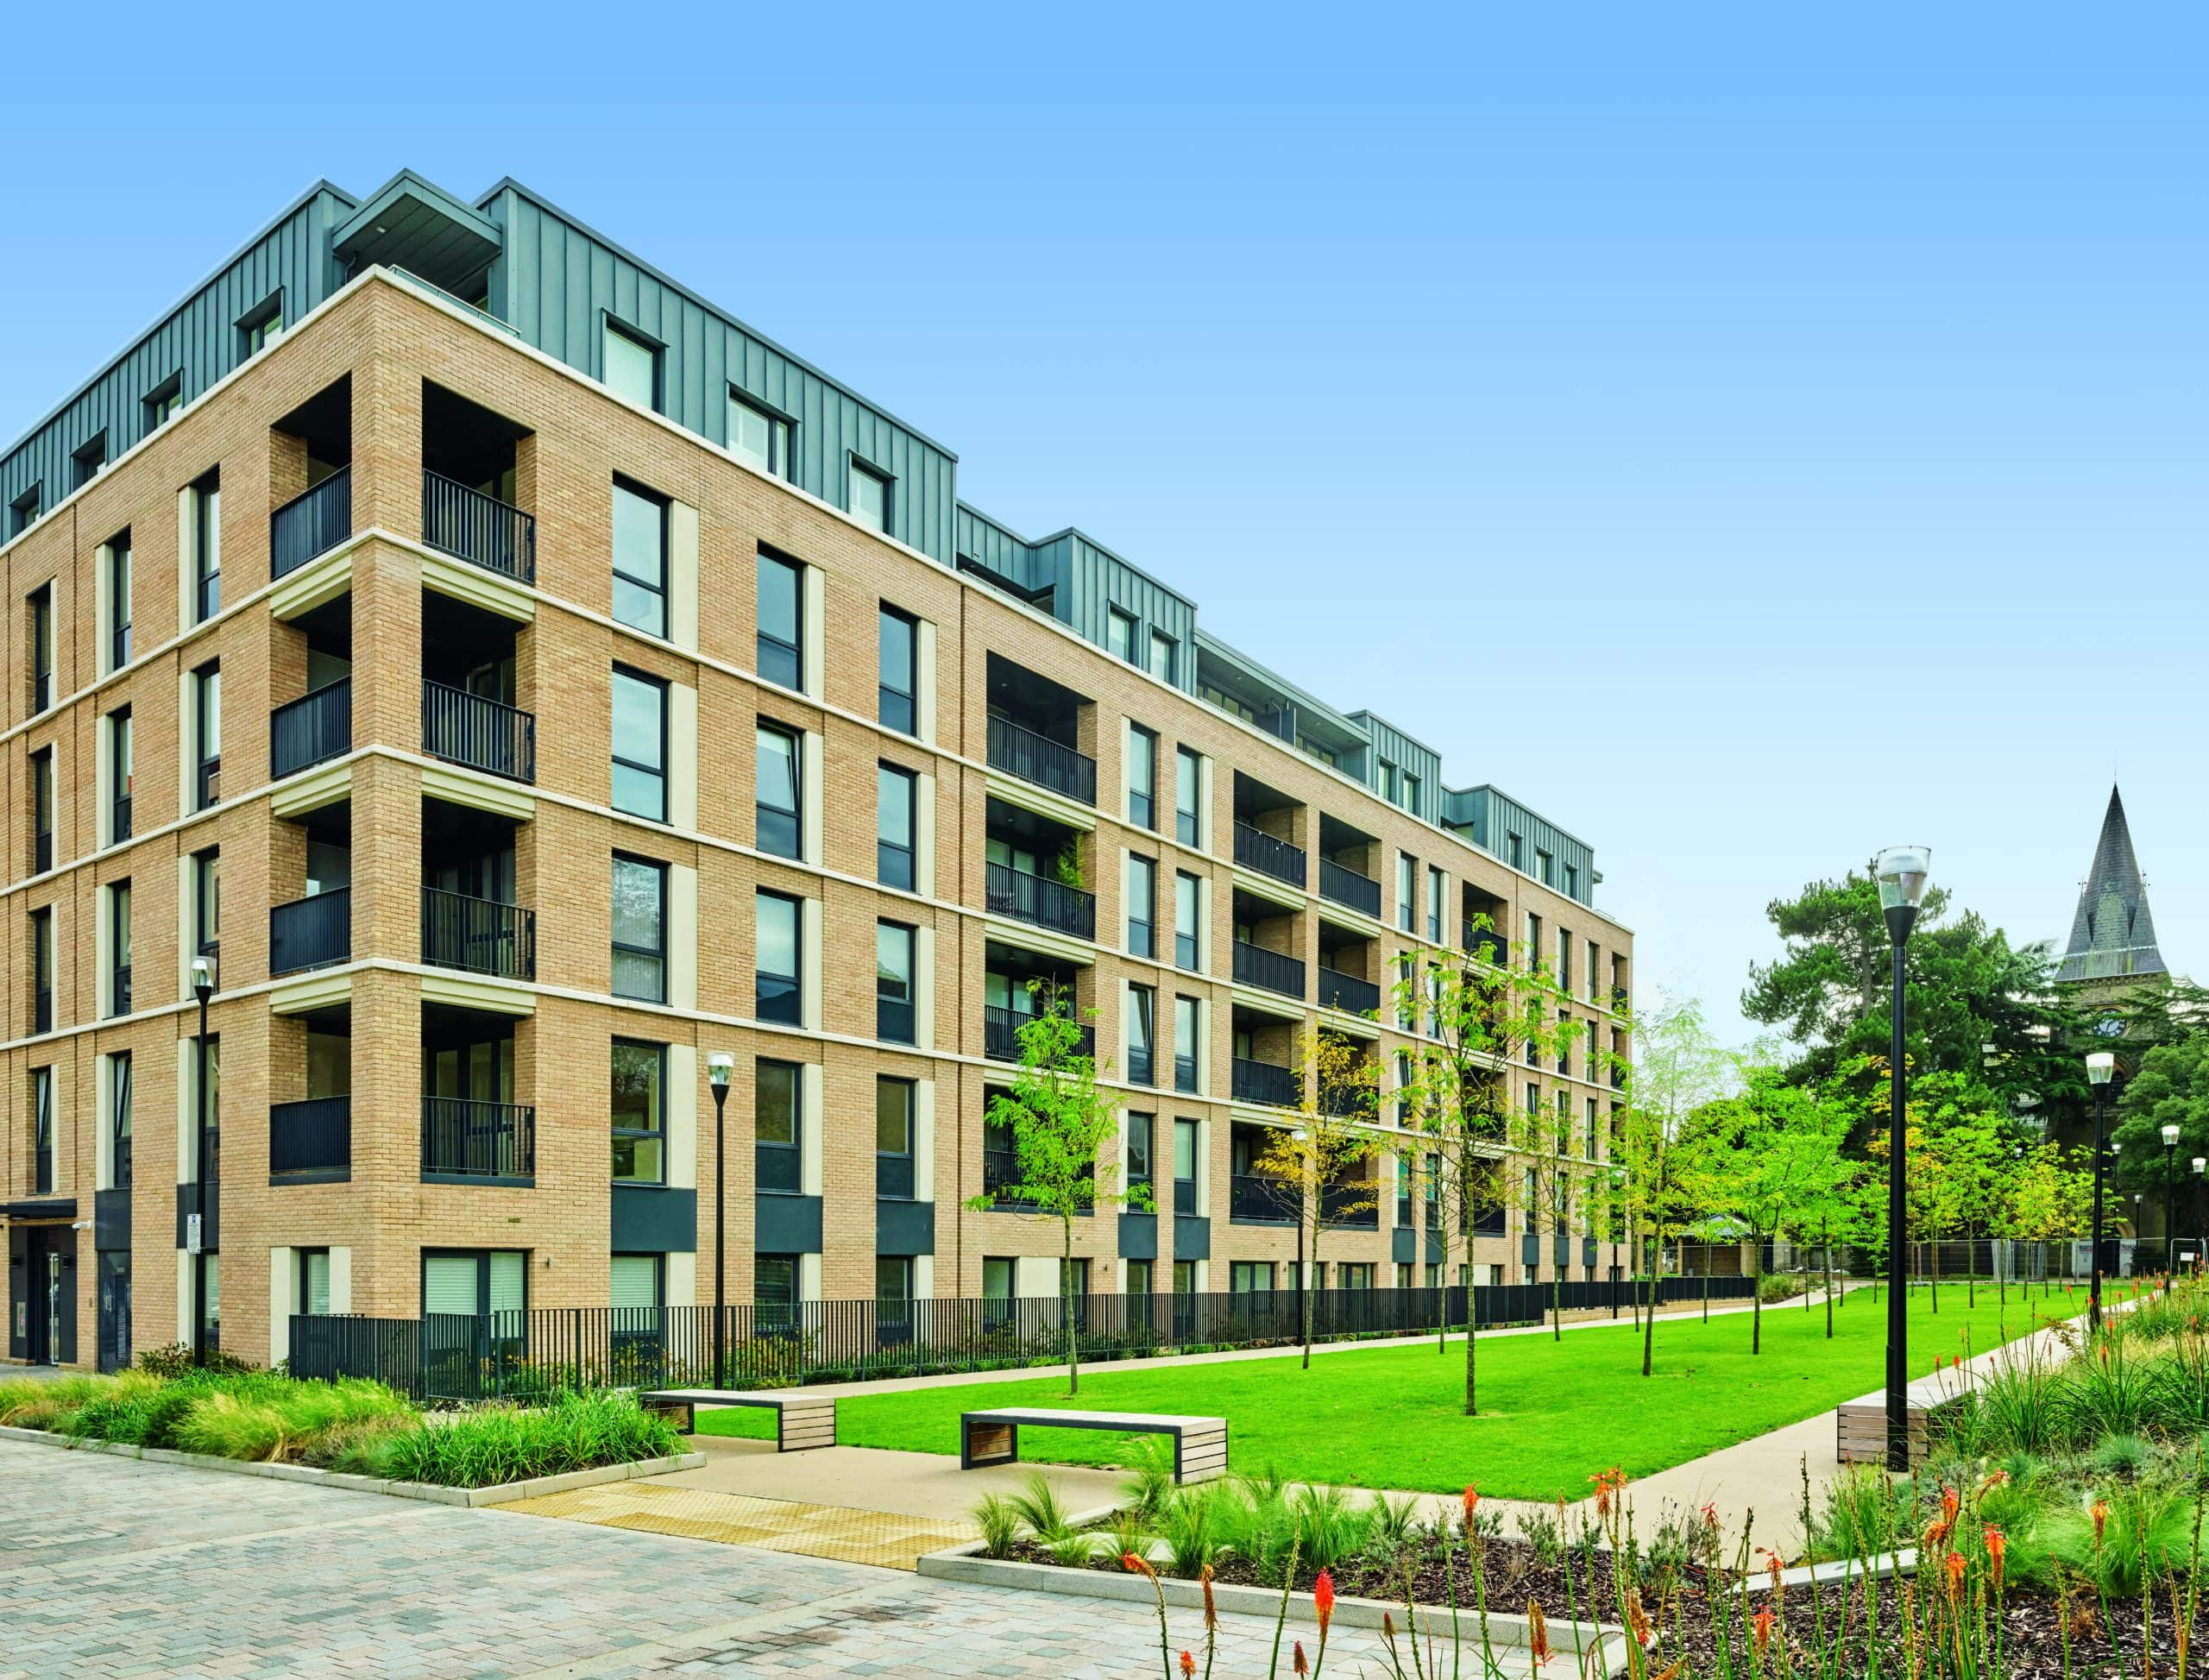 External photography of Catalyst's Aspire development - Shared Ownership and Help to Buy homes available on Share to Buy